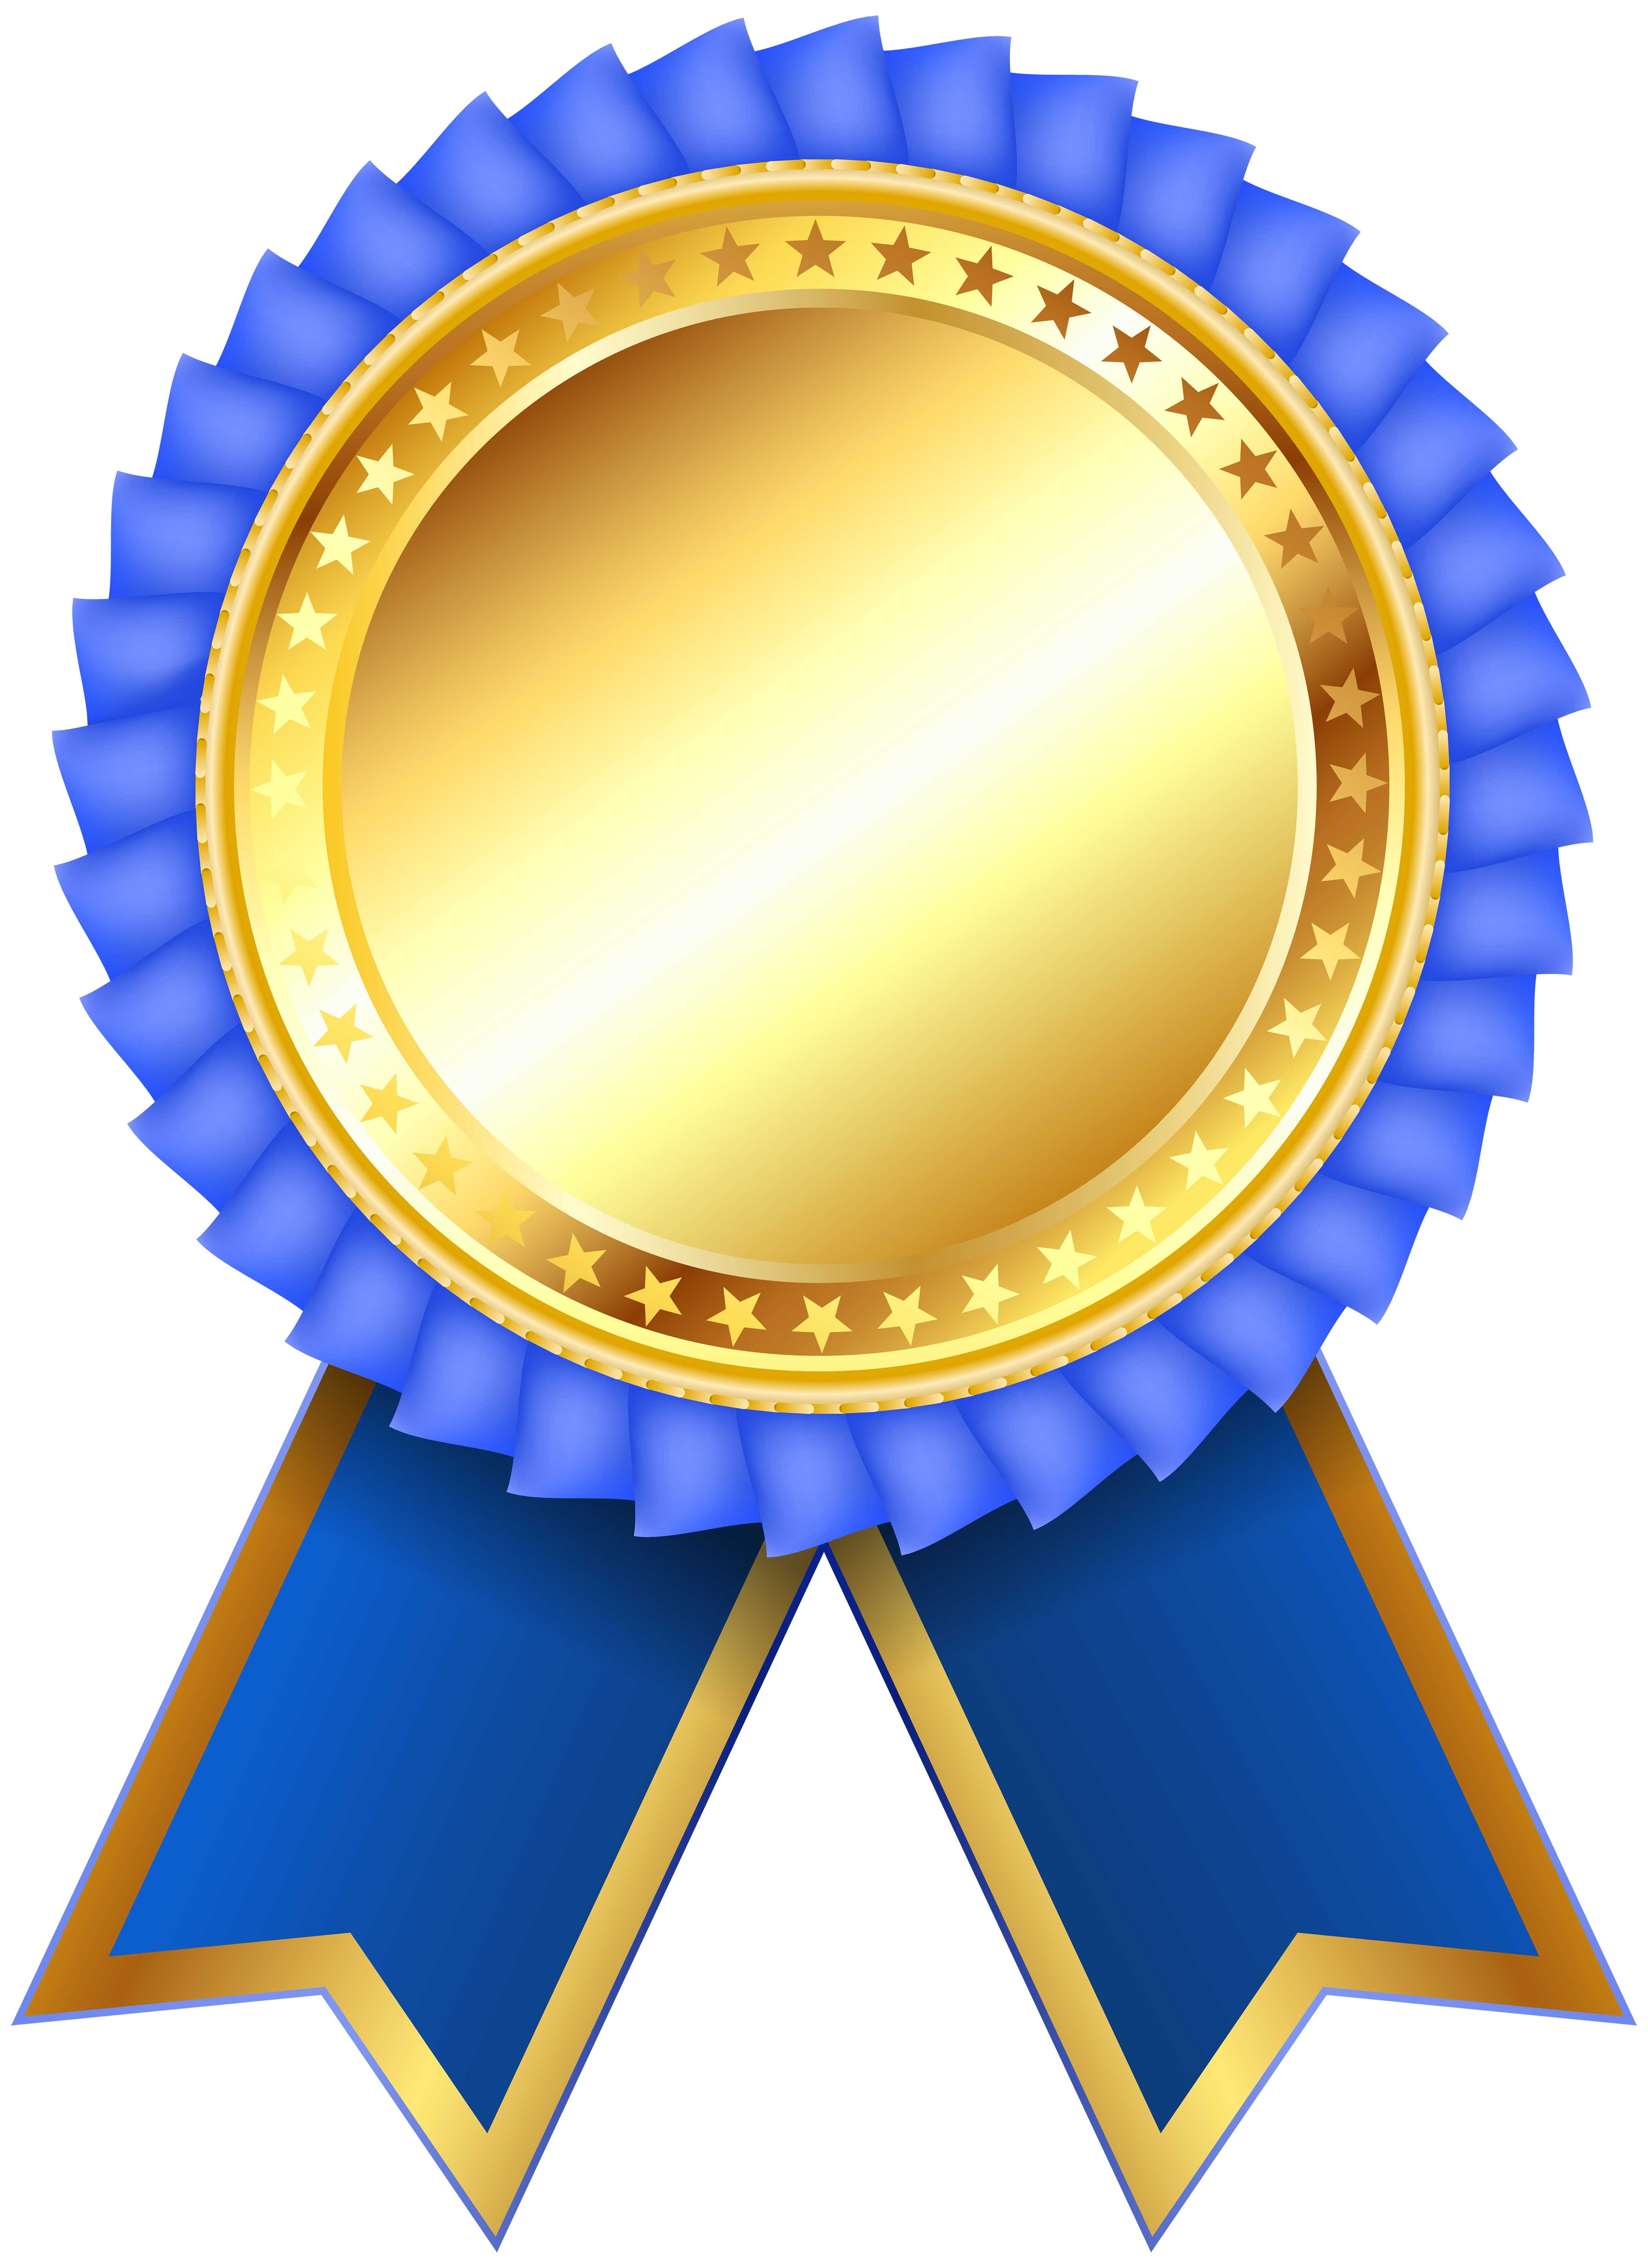 image library stock  collection of award. Awards clipart